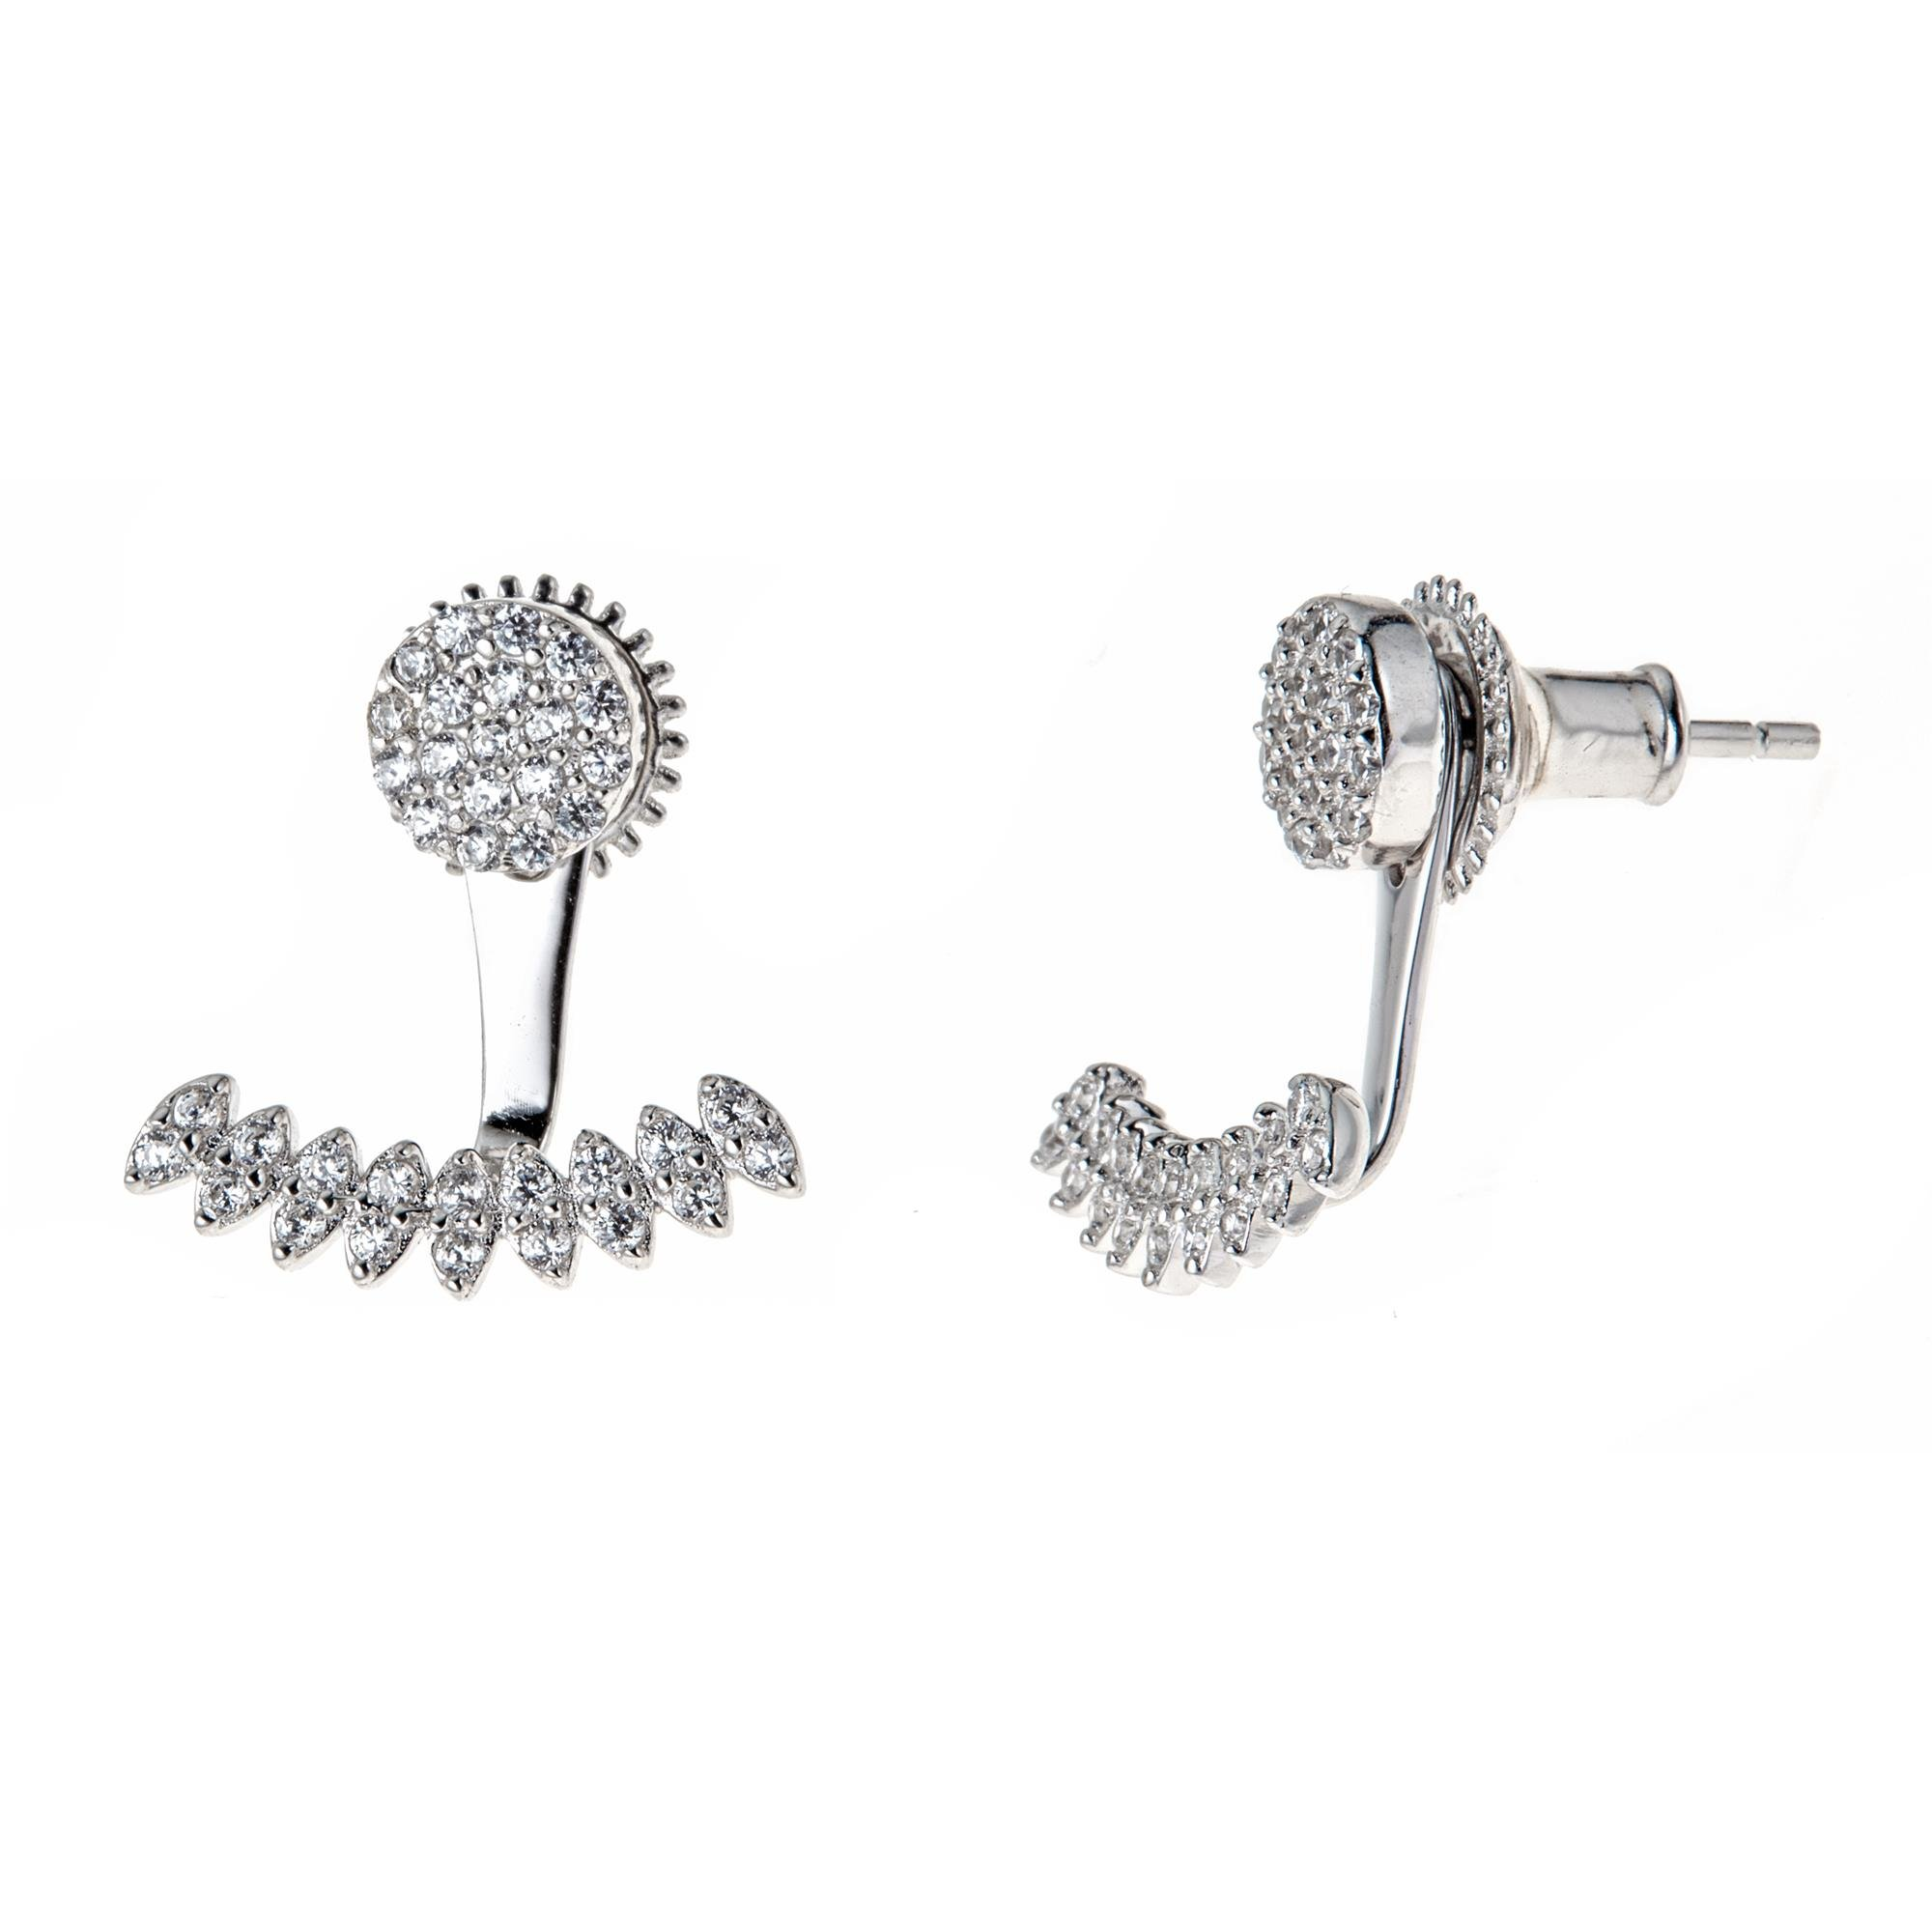 Platinum Plated 925 Sterling Silver Round Cubic Zirconia Round Disc Stud And Curved Bar Earring Jackets